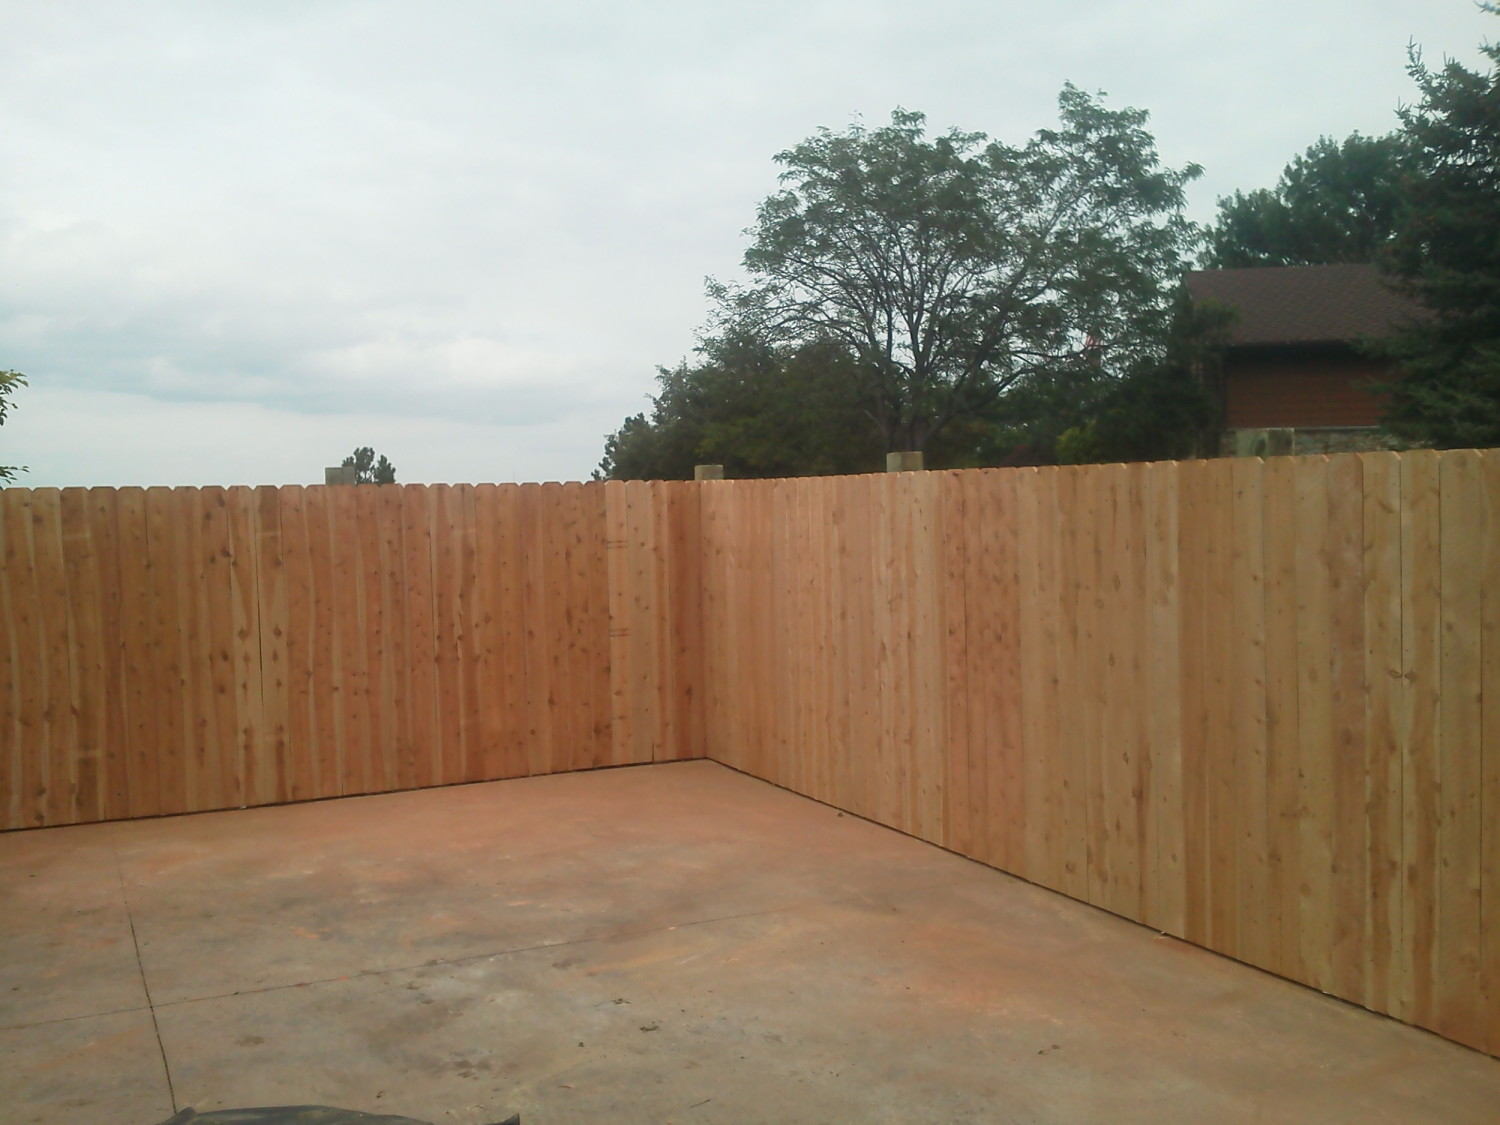 Rapid City Residential Fencing 2